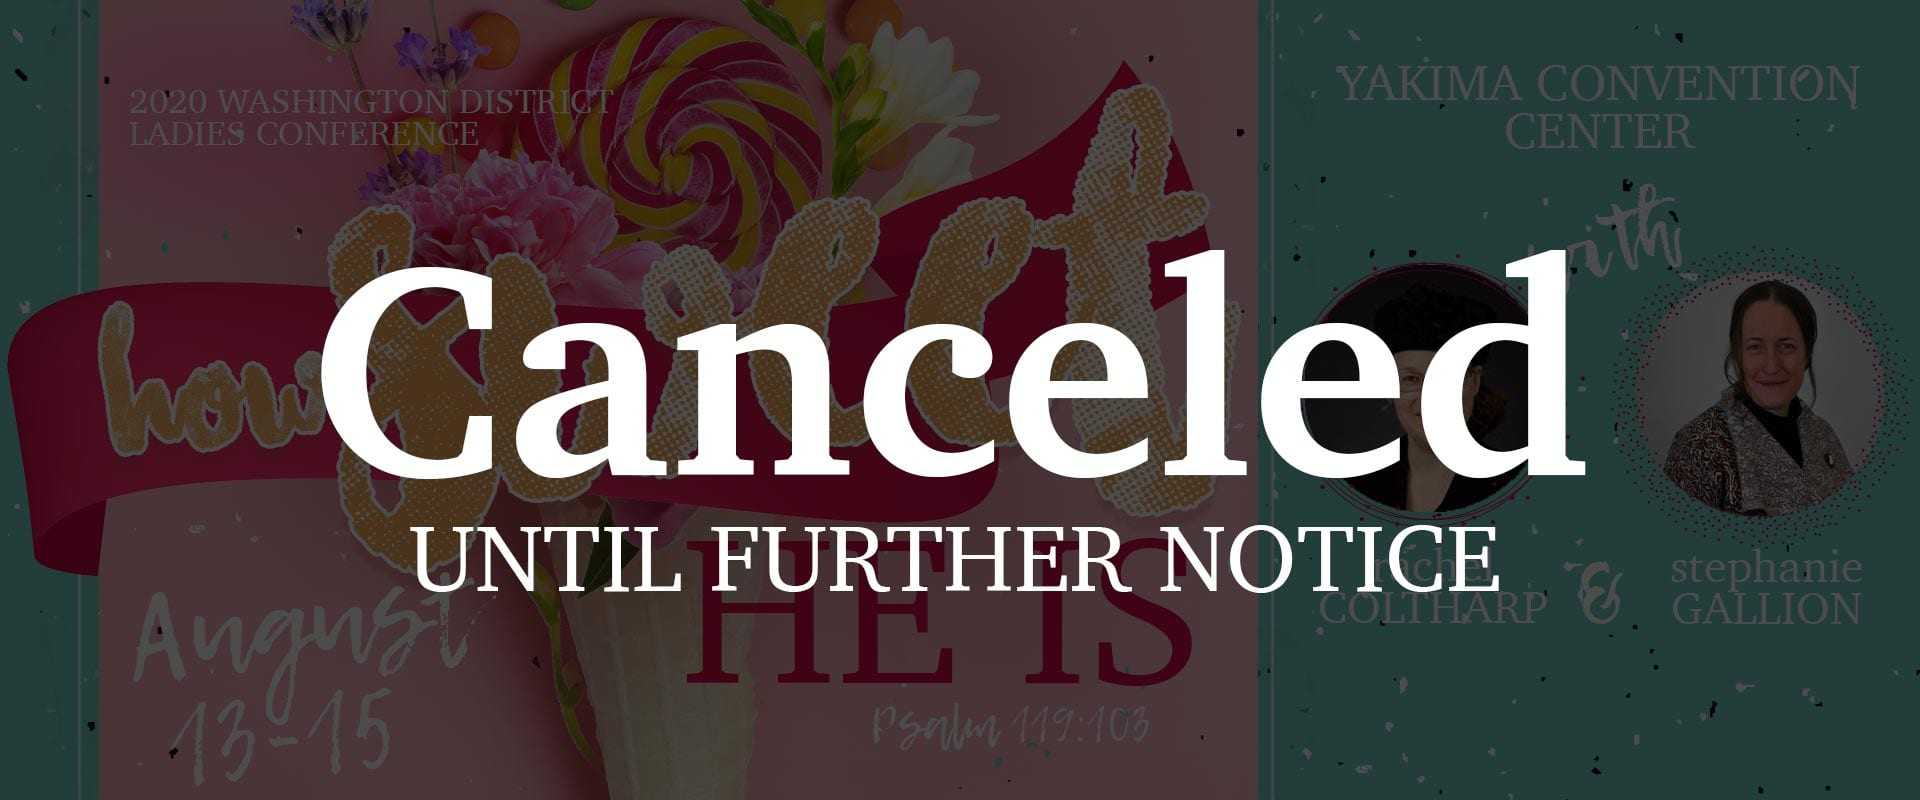 LC2020-BANNER-canceled